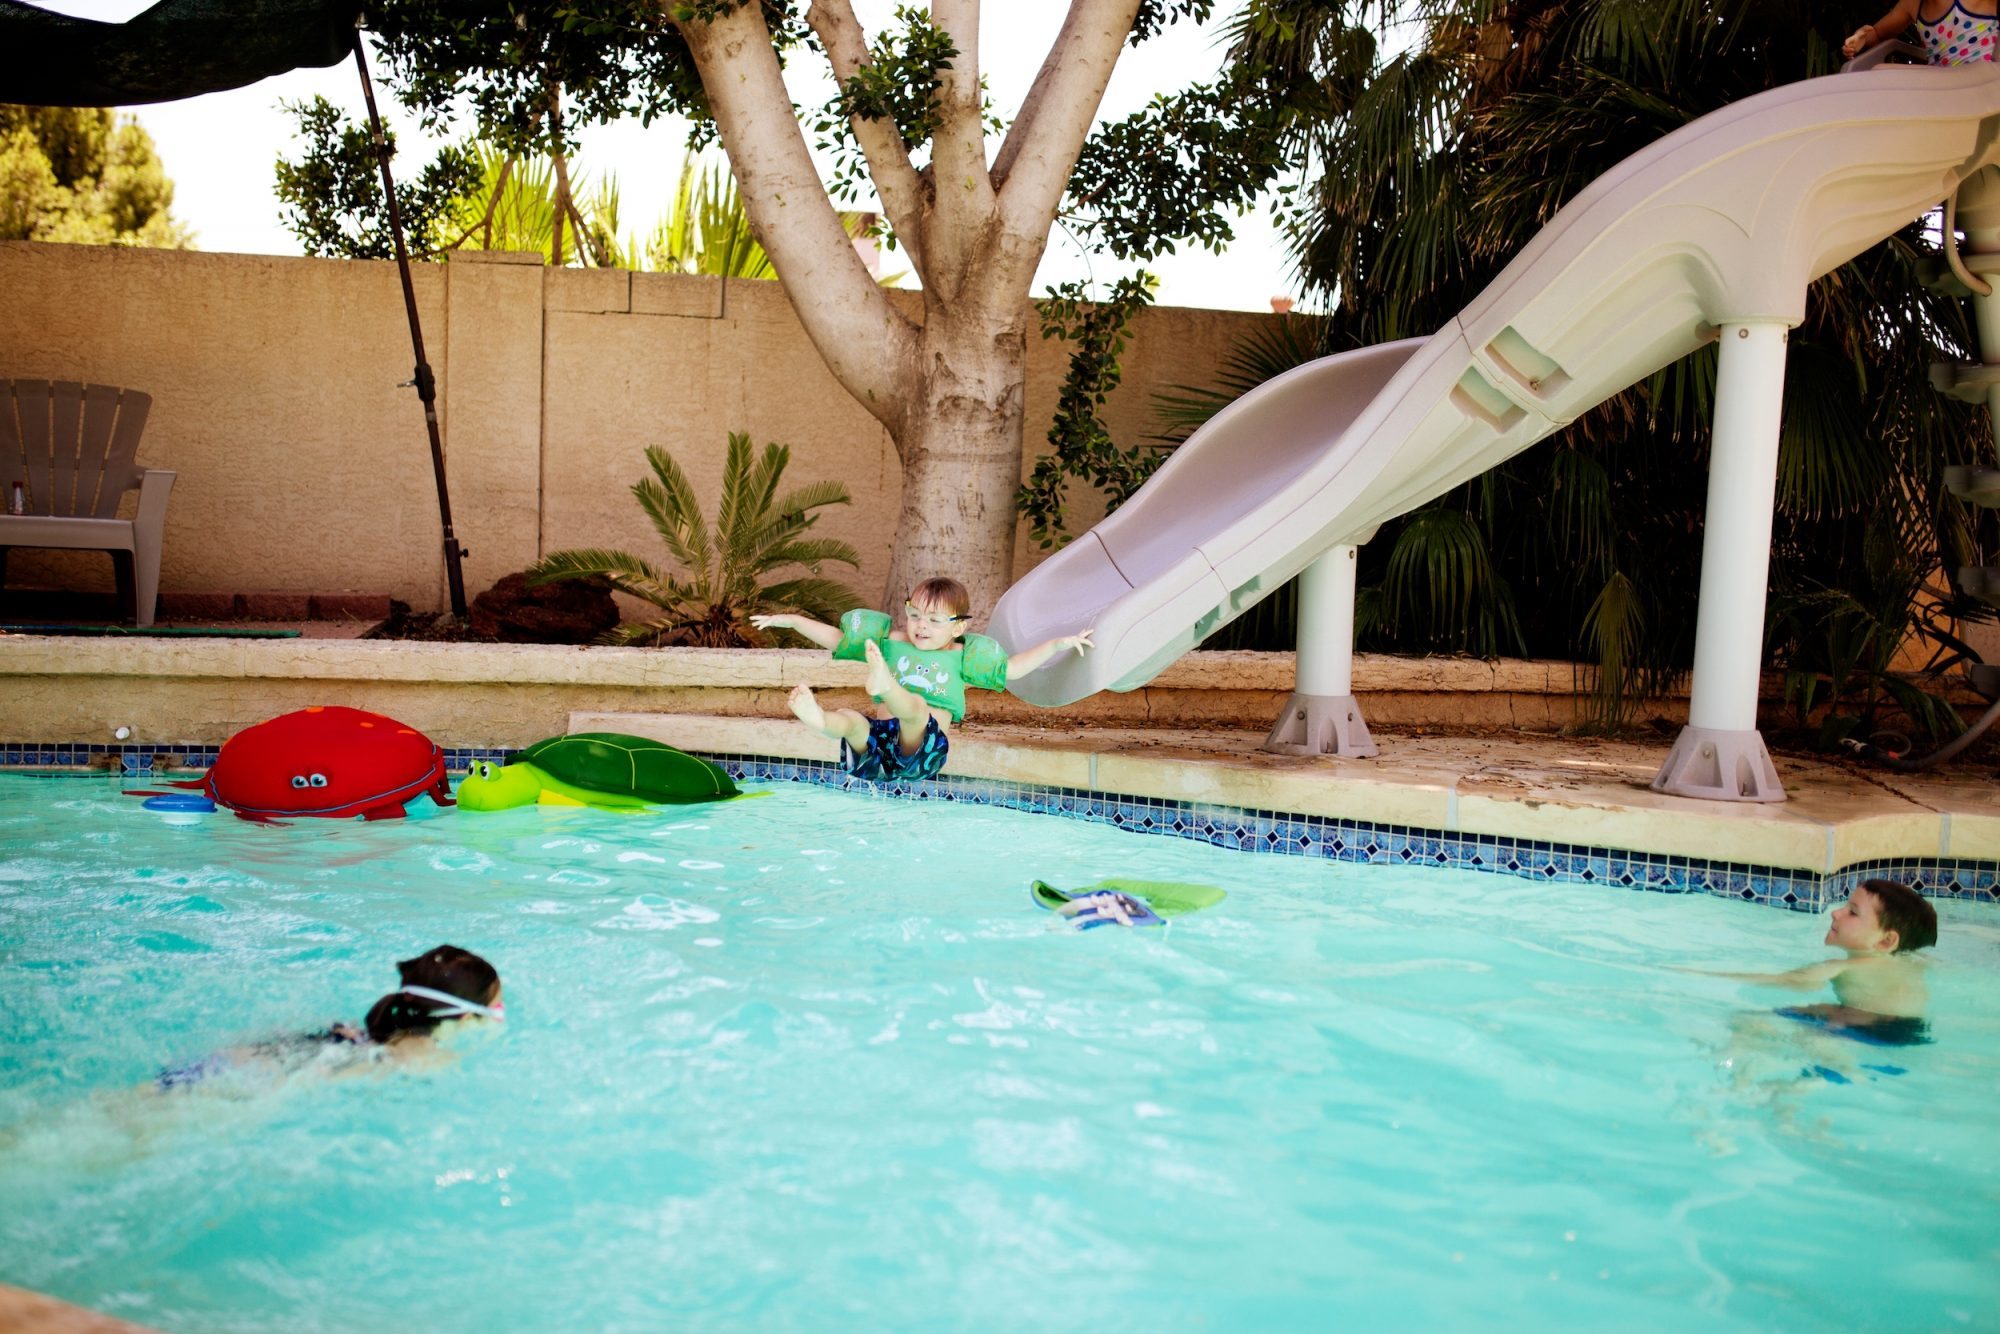 Tips to avoid children drowning at home: A major concern during hot months